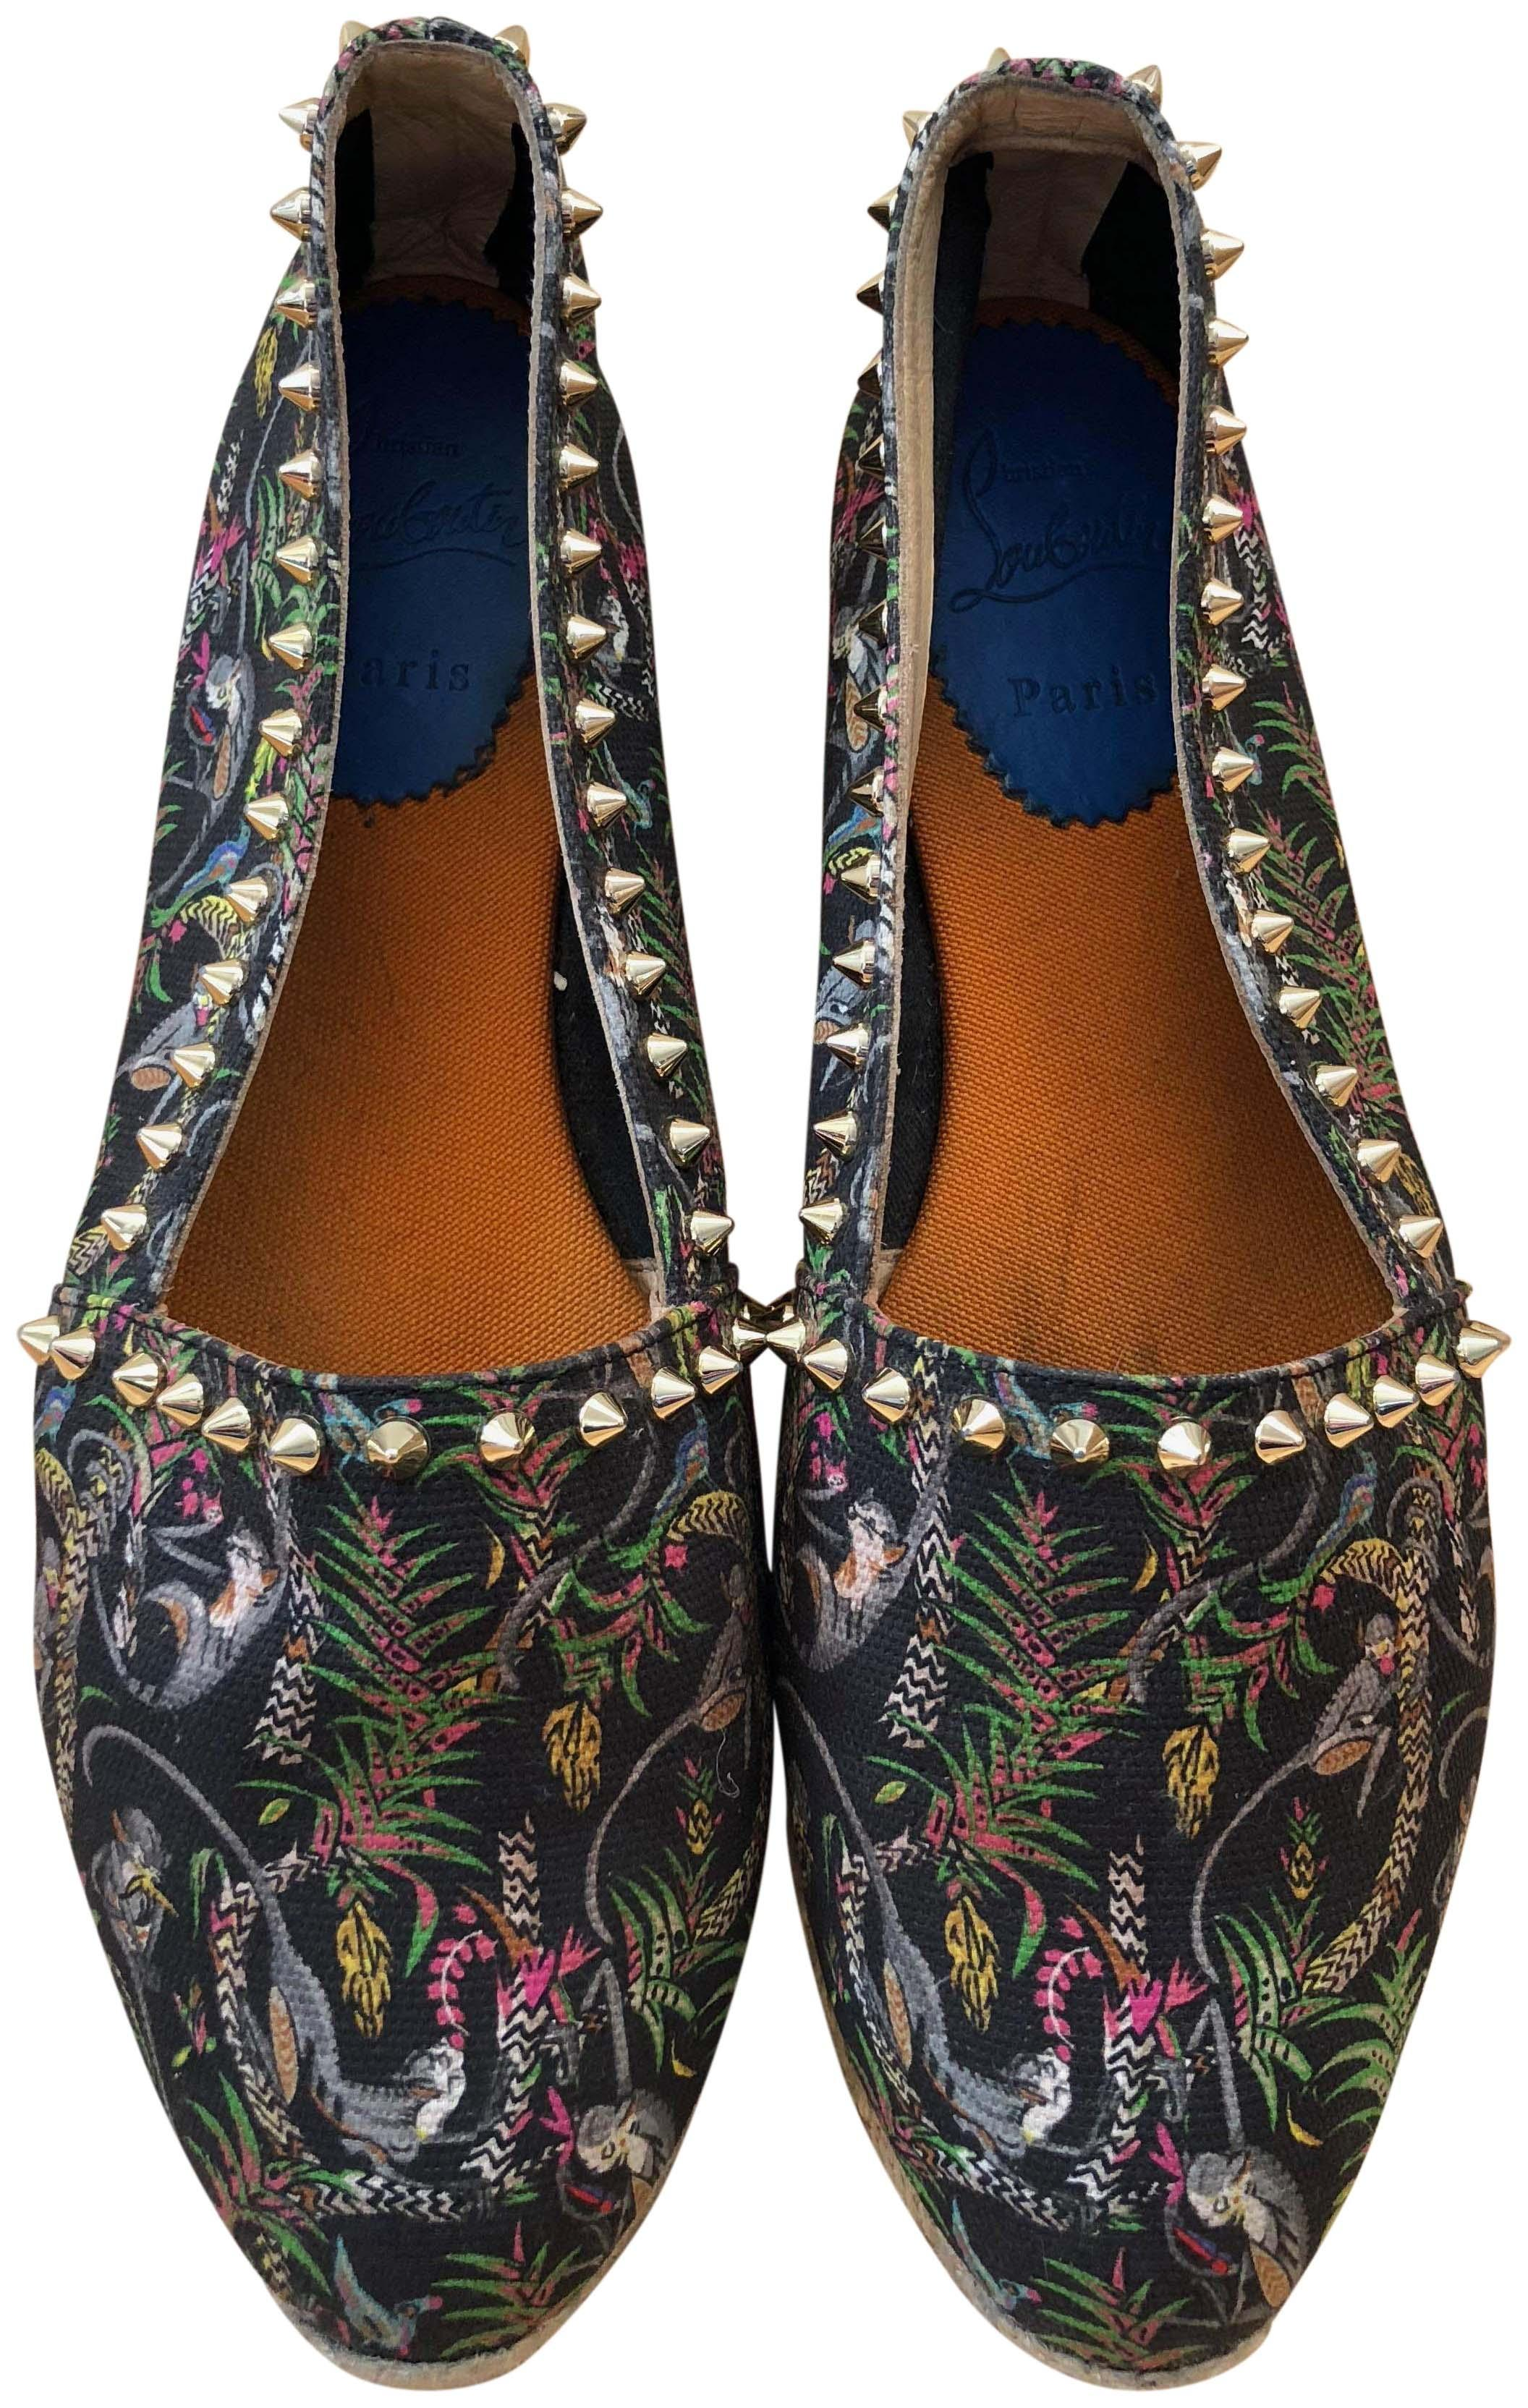 681074fedabe ... ireland christian louboutin black gold jungle print flats 38197 a8410  ebay christian louboutin ares ...